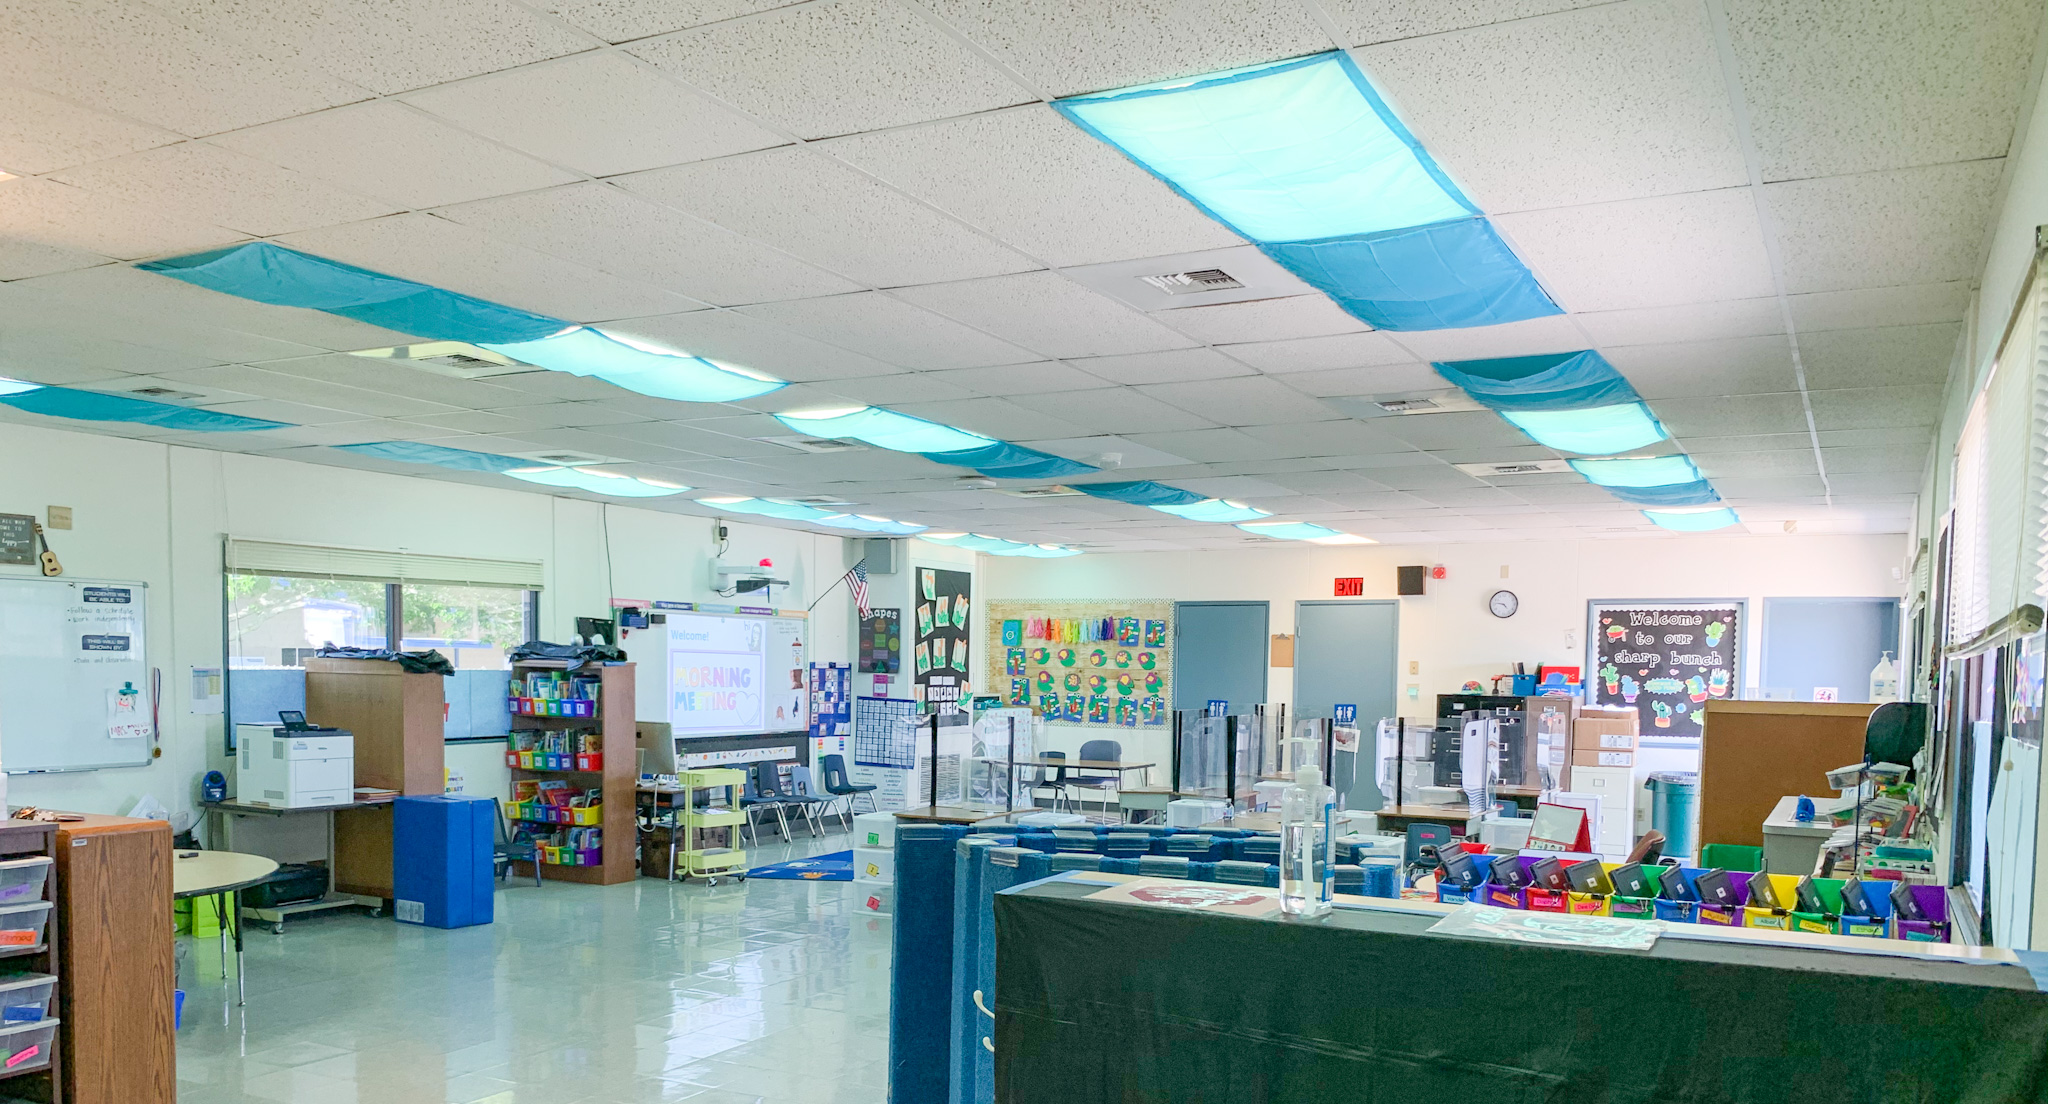 Another angle of my K-2 classroom.